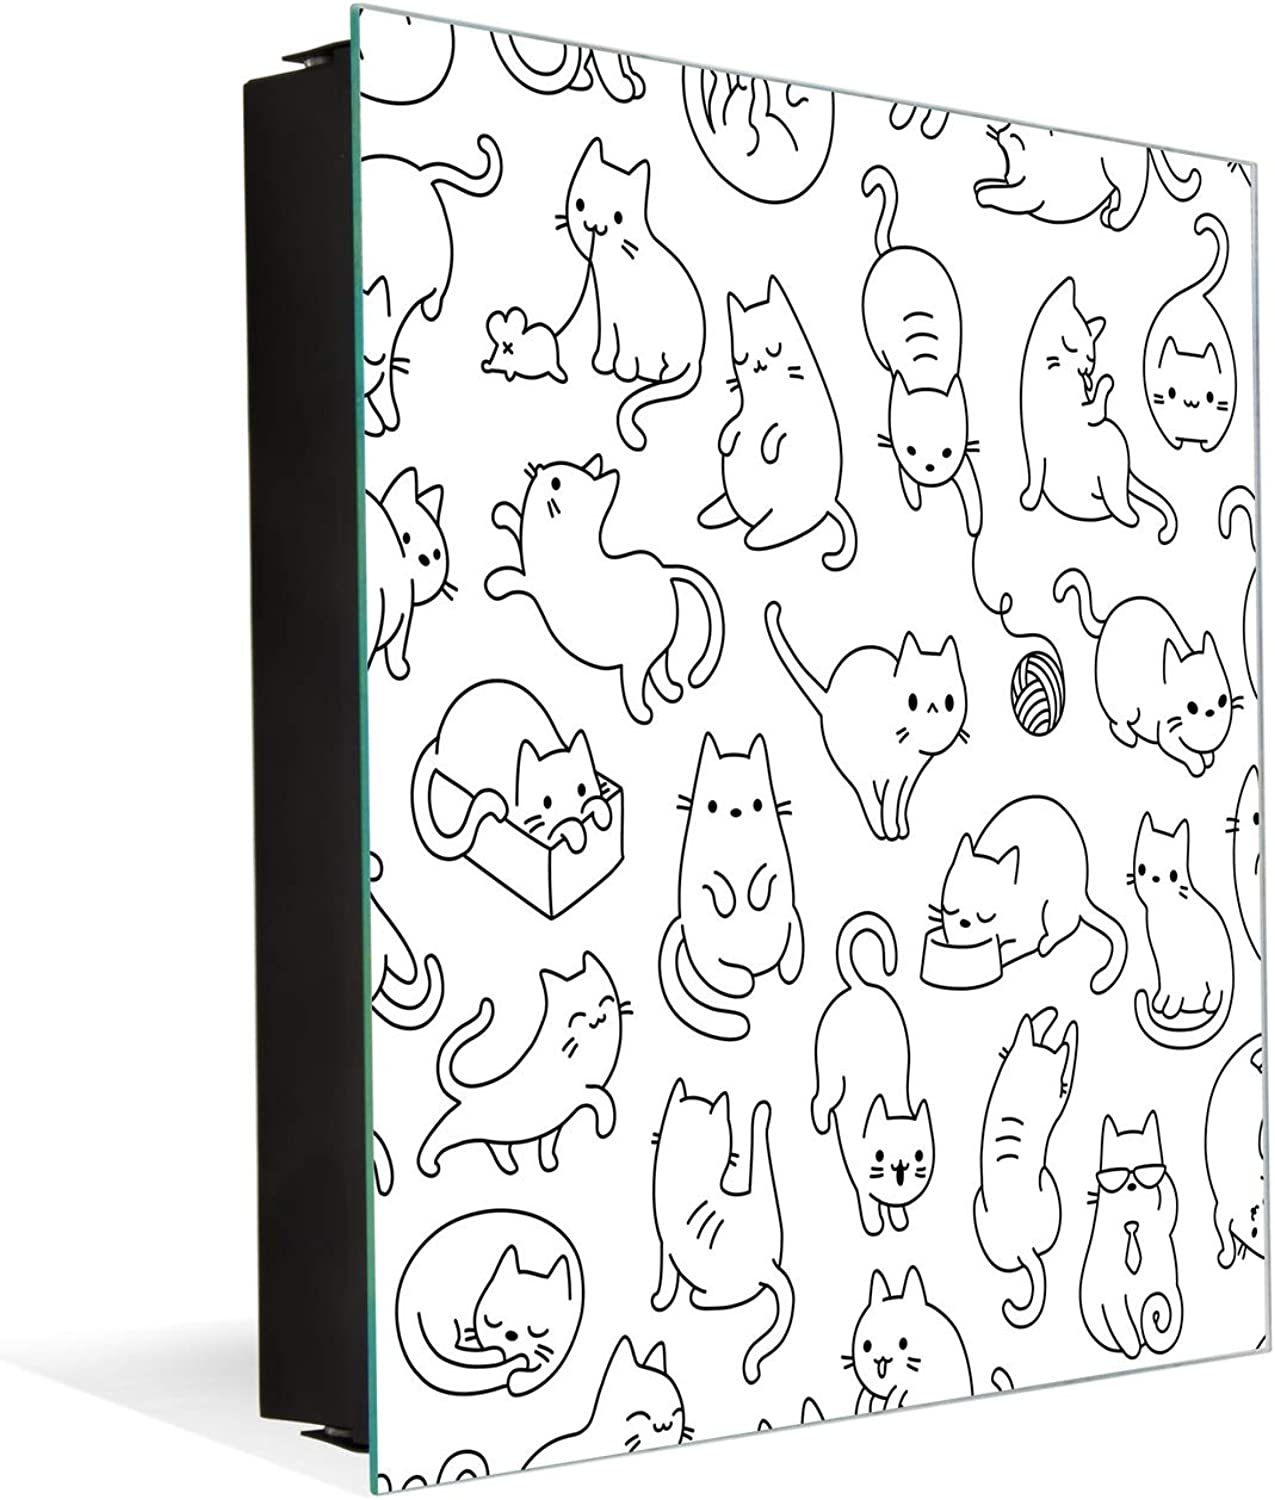 50 Keys Cabinet with Decorative Front Panel and Glass White Board K02 Cute Cats